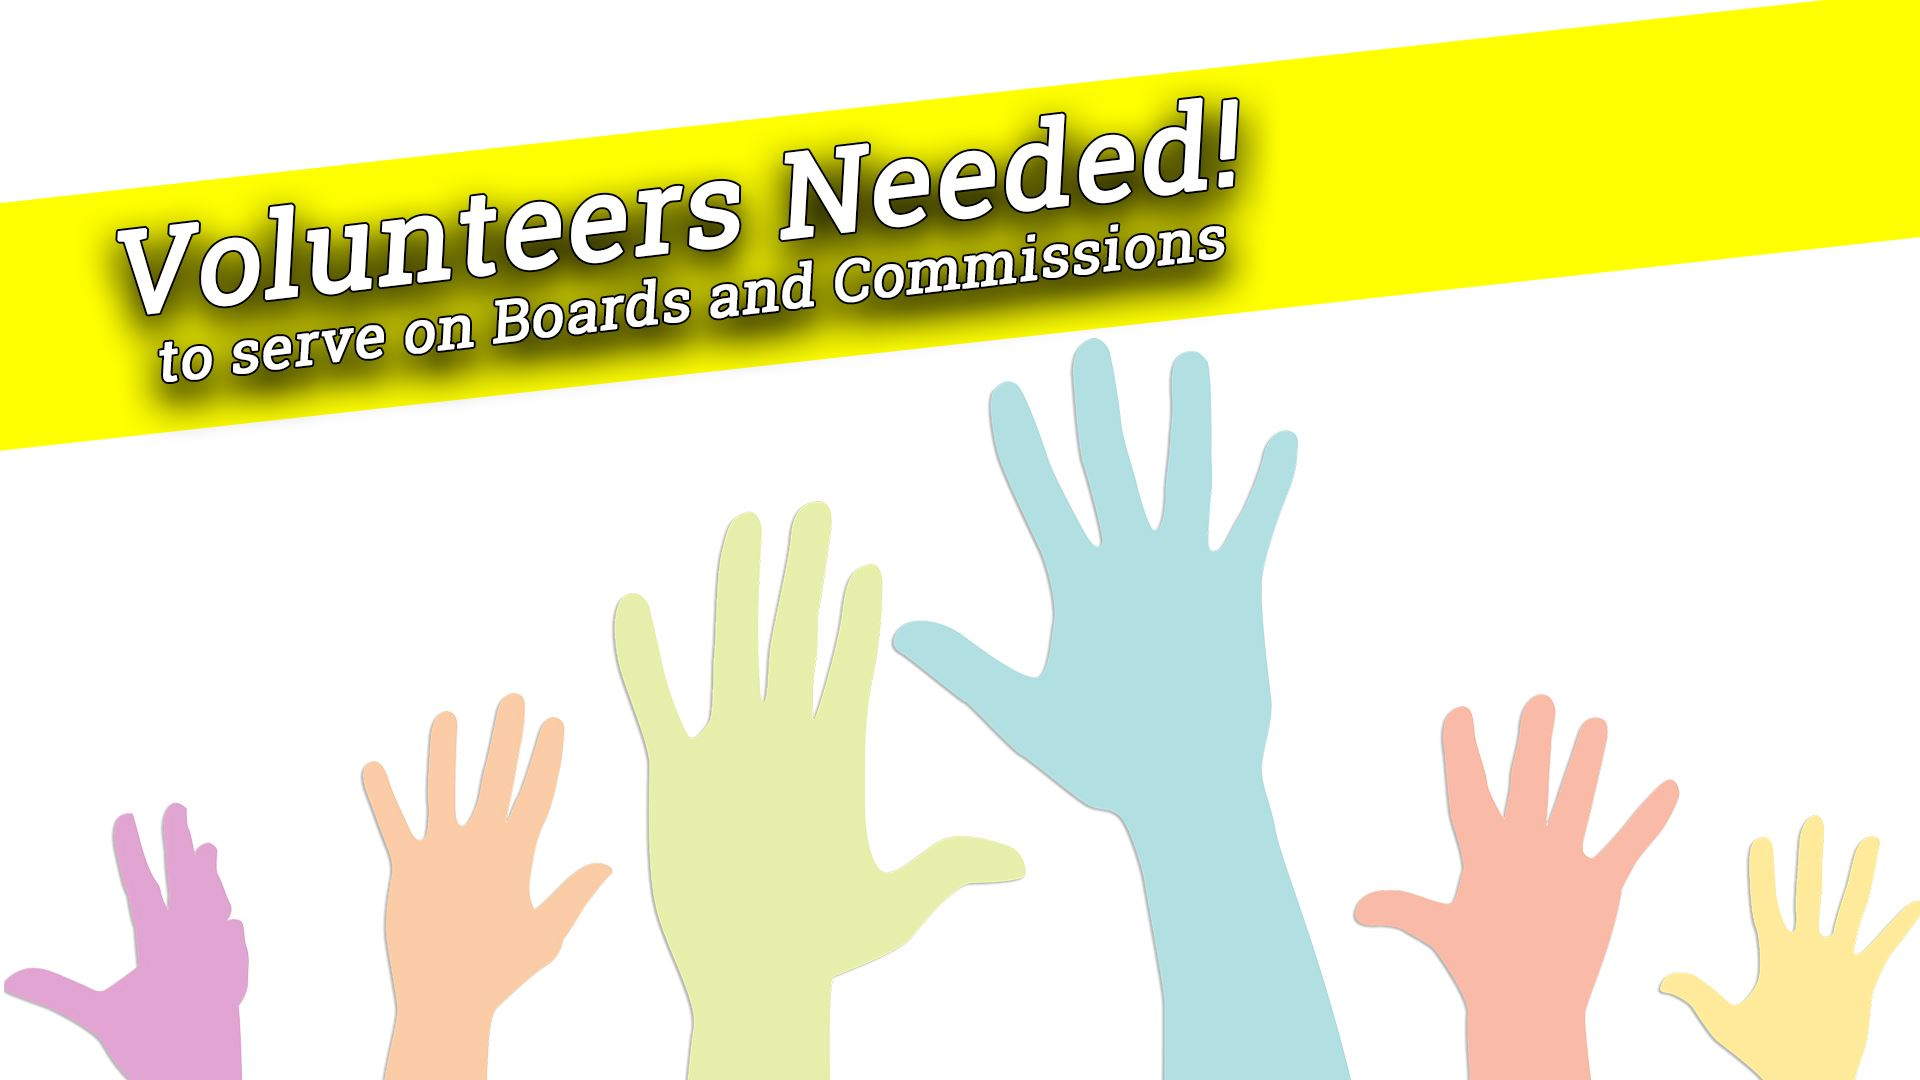 An image asking for volunteers for boards and commissions.